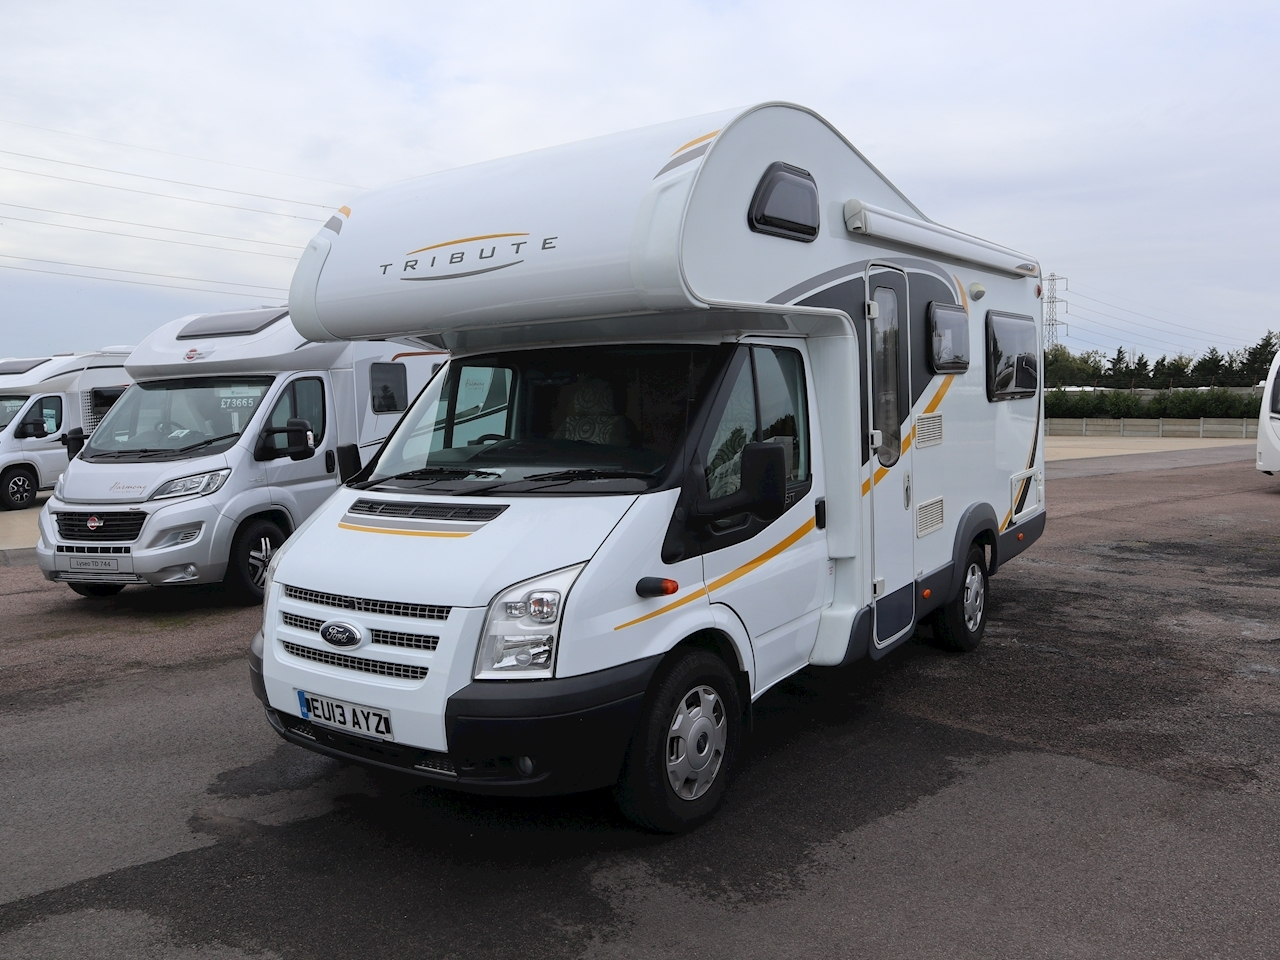 Ford Auto Trail Tribute T 625 - Large 0